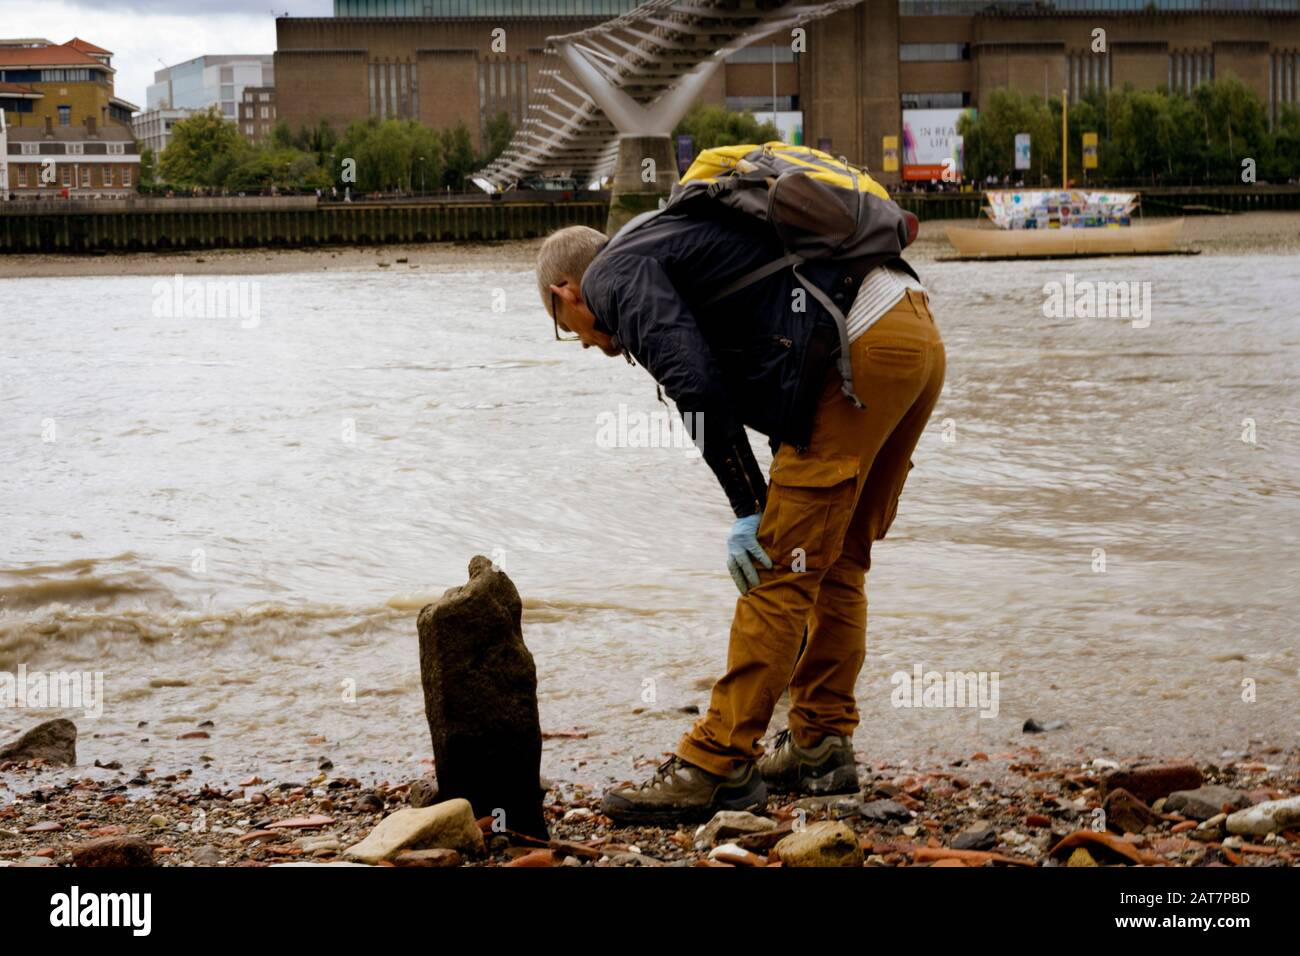 Mudlarking on the Thames foreshore looking towards the Tate Modern. With ancient posts exposed, its is a popular place for mudlarking and archaeological finds. Stock Photo